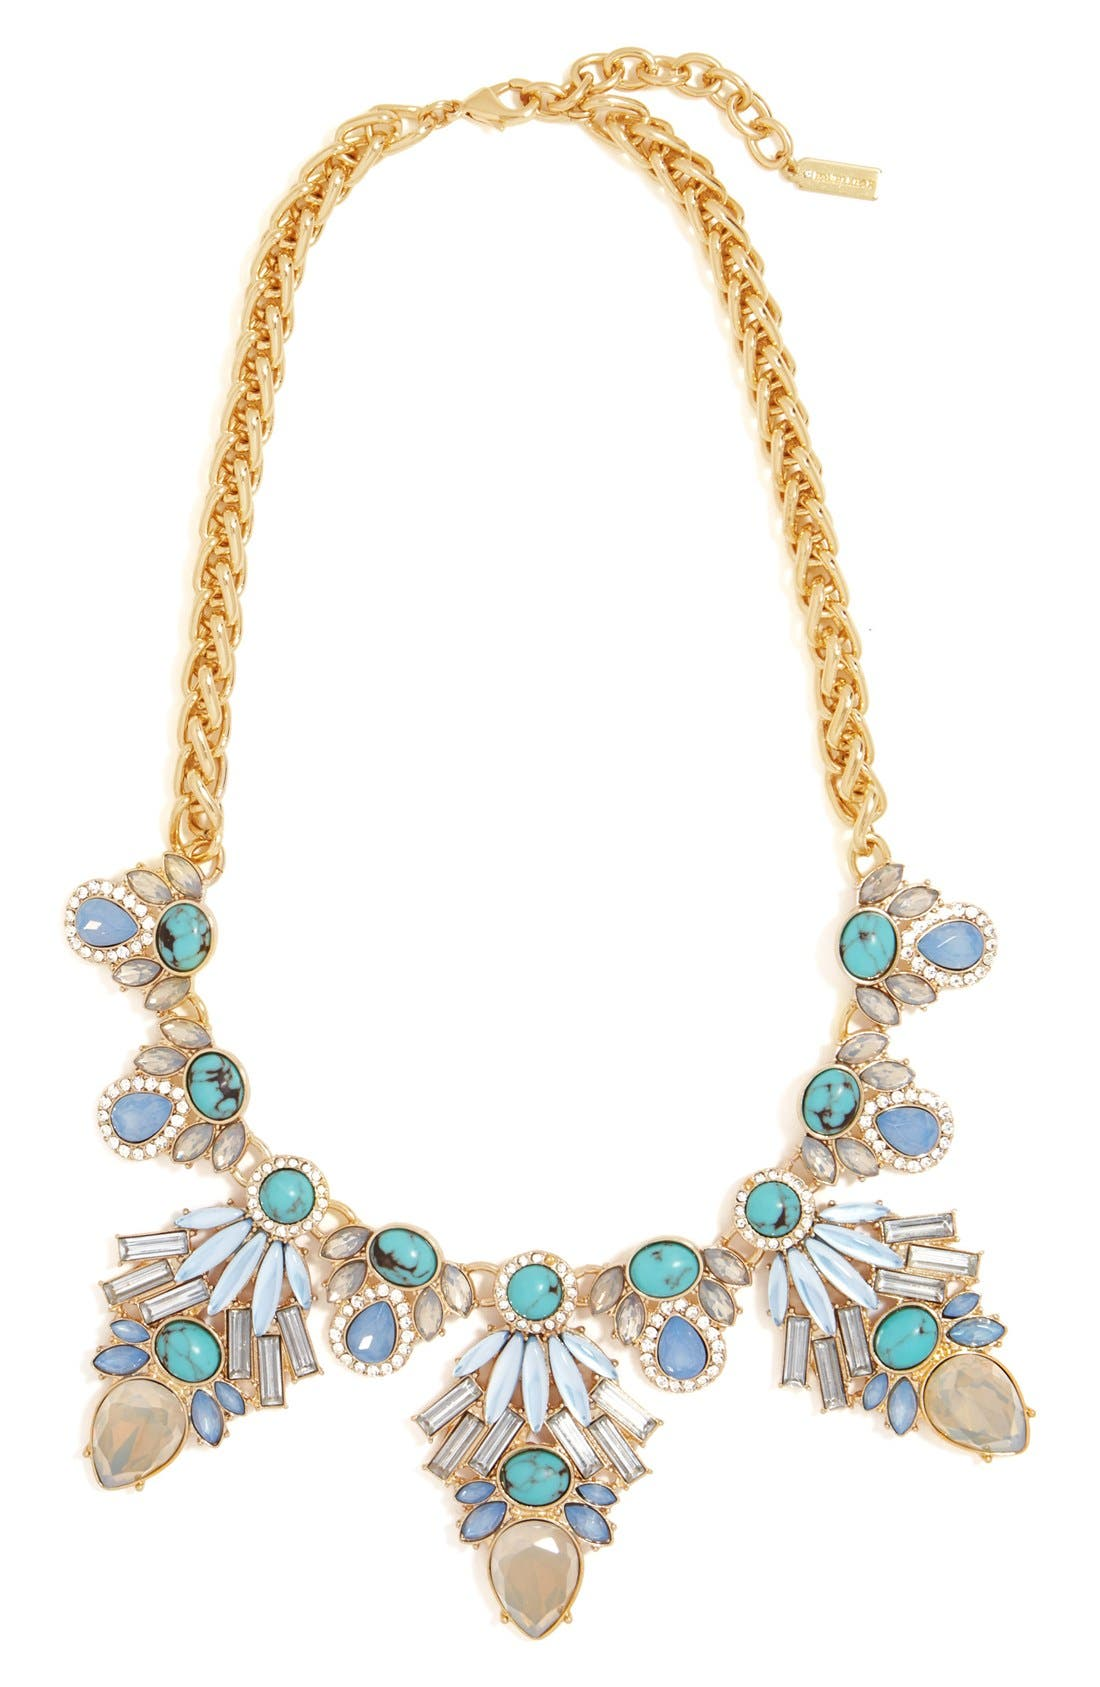 'Baltic' Collar Necklace,                         Main,                         color, Gold/ Turquoise